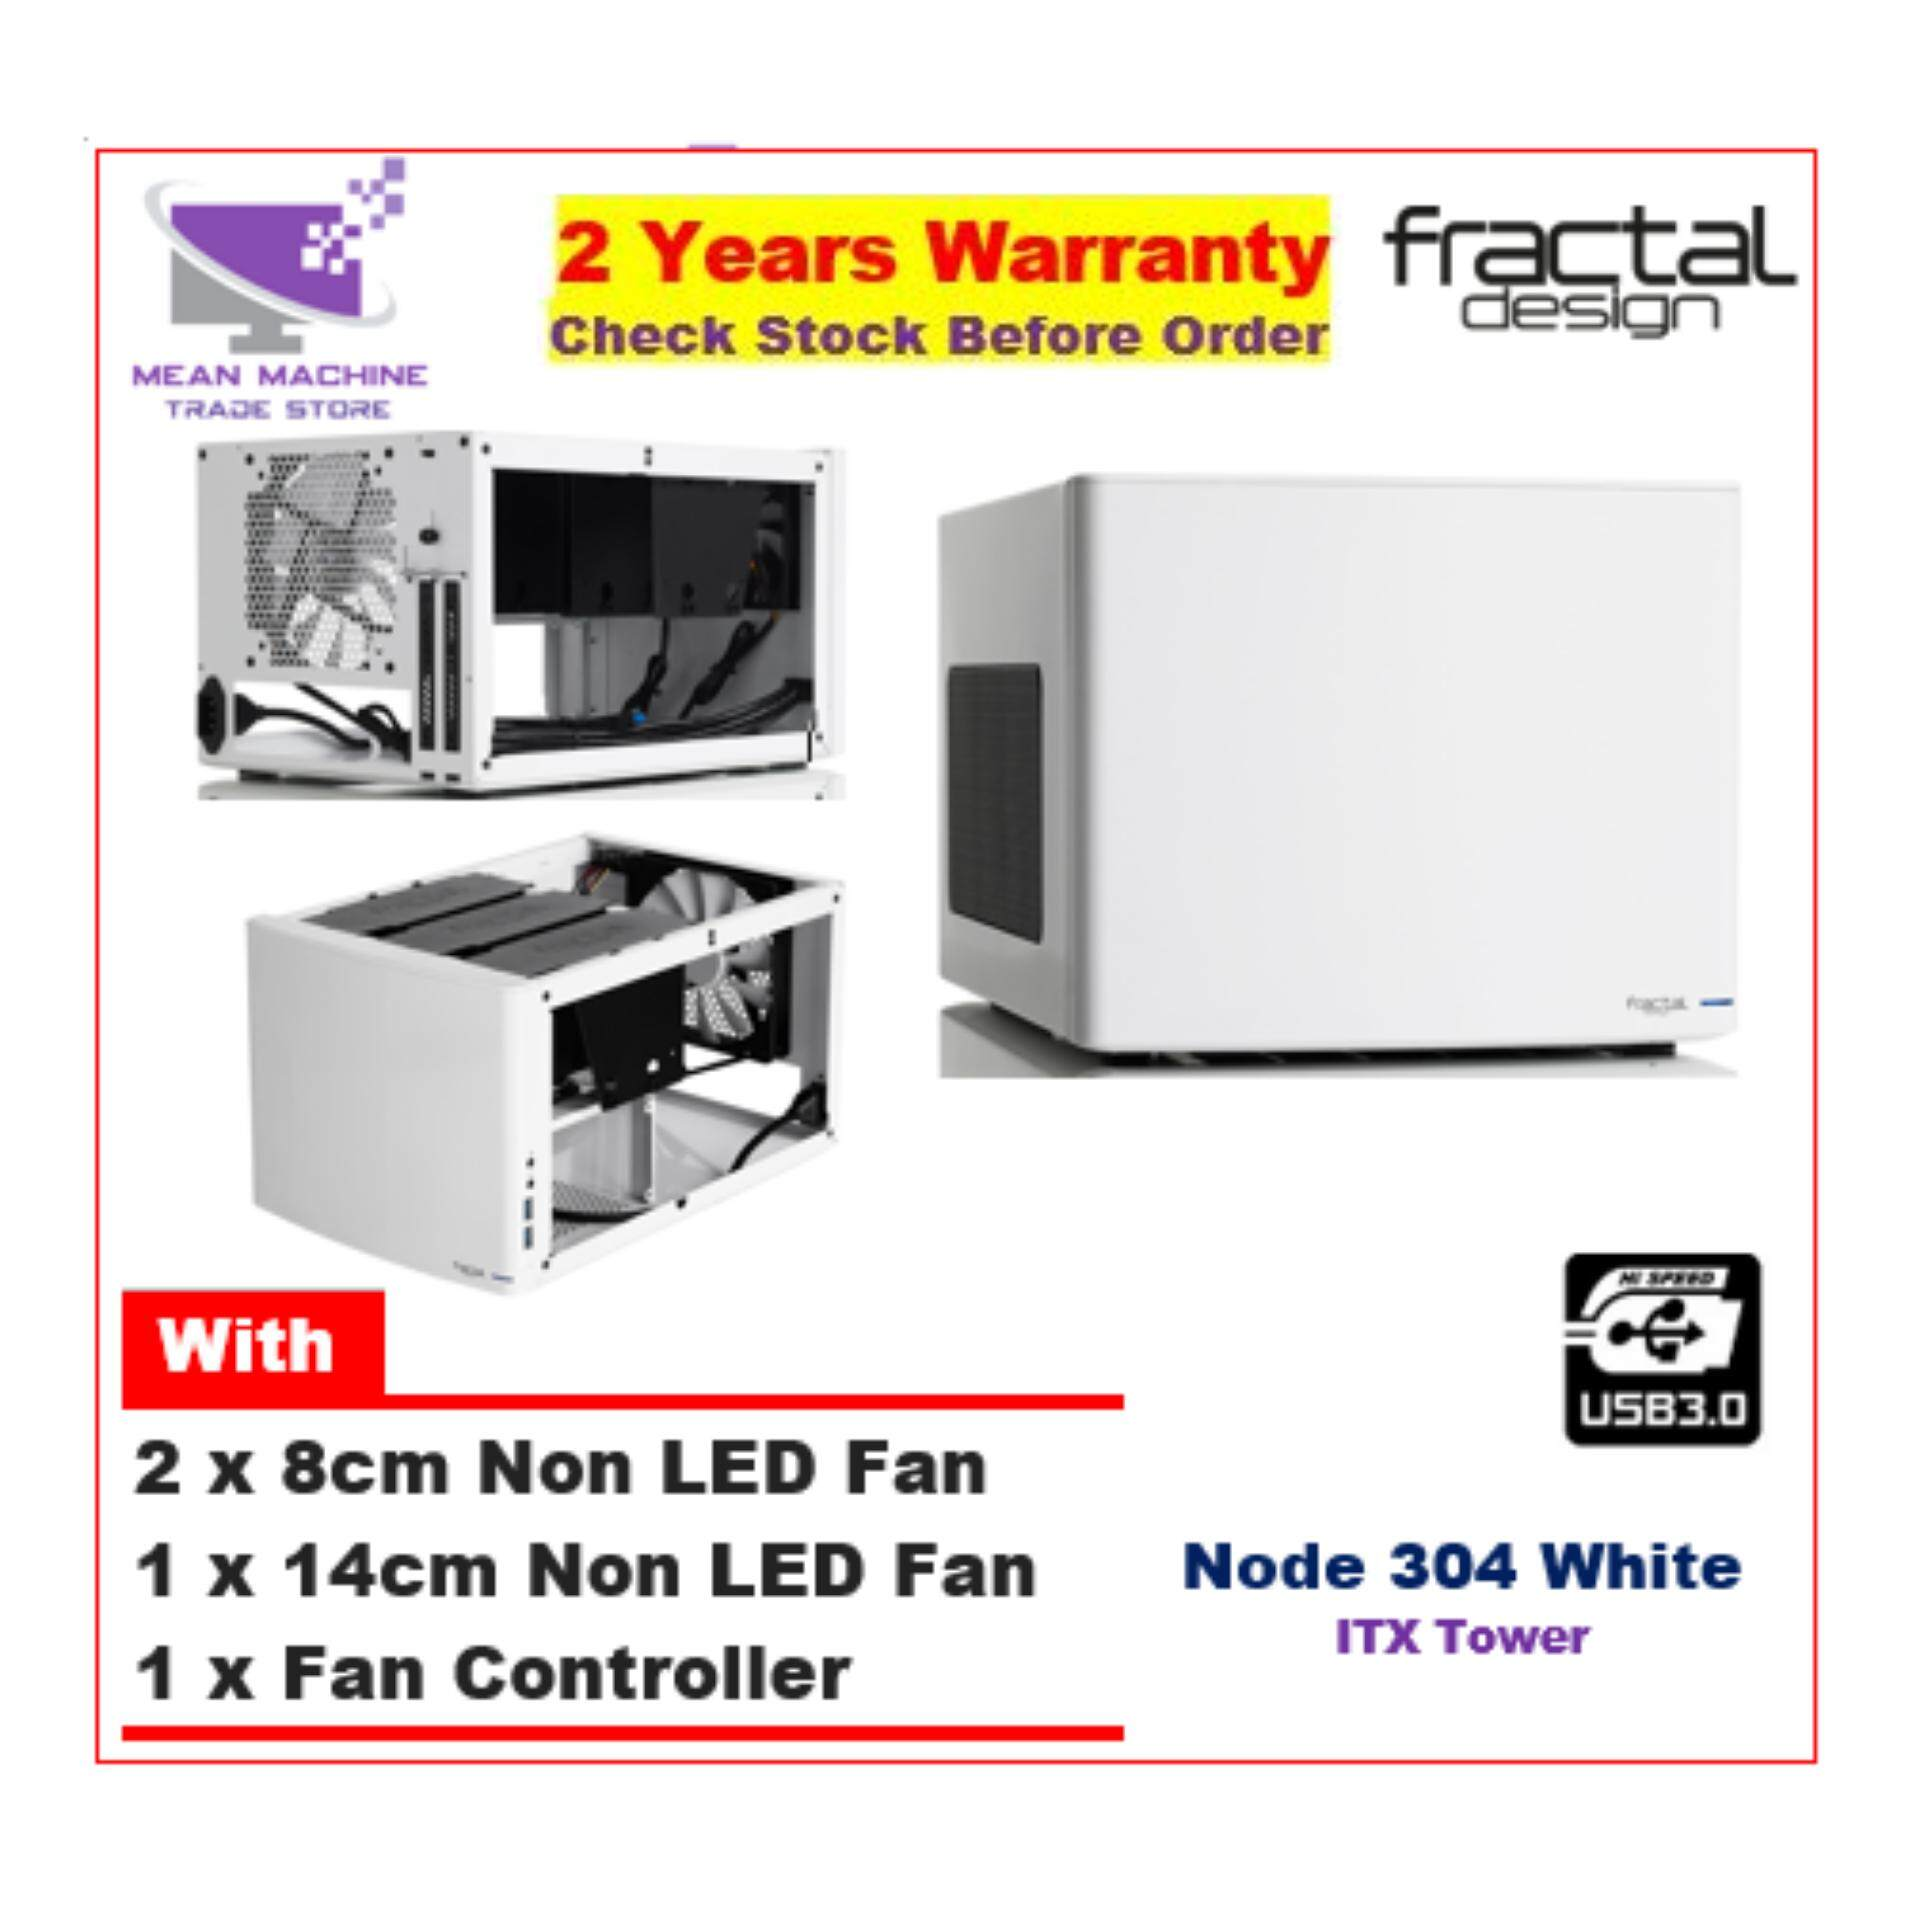 #Fractal Design Node 304 White Mini ITX Chassis (3 Fan Included) # Malaysia